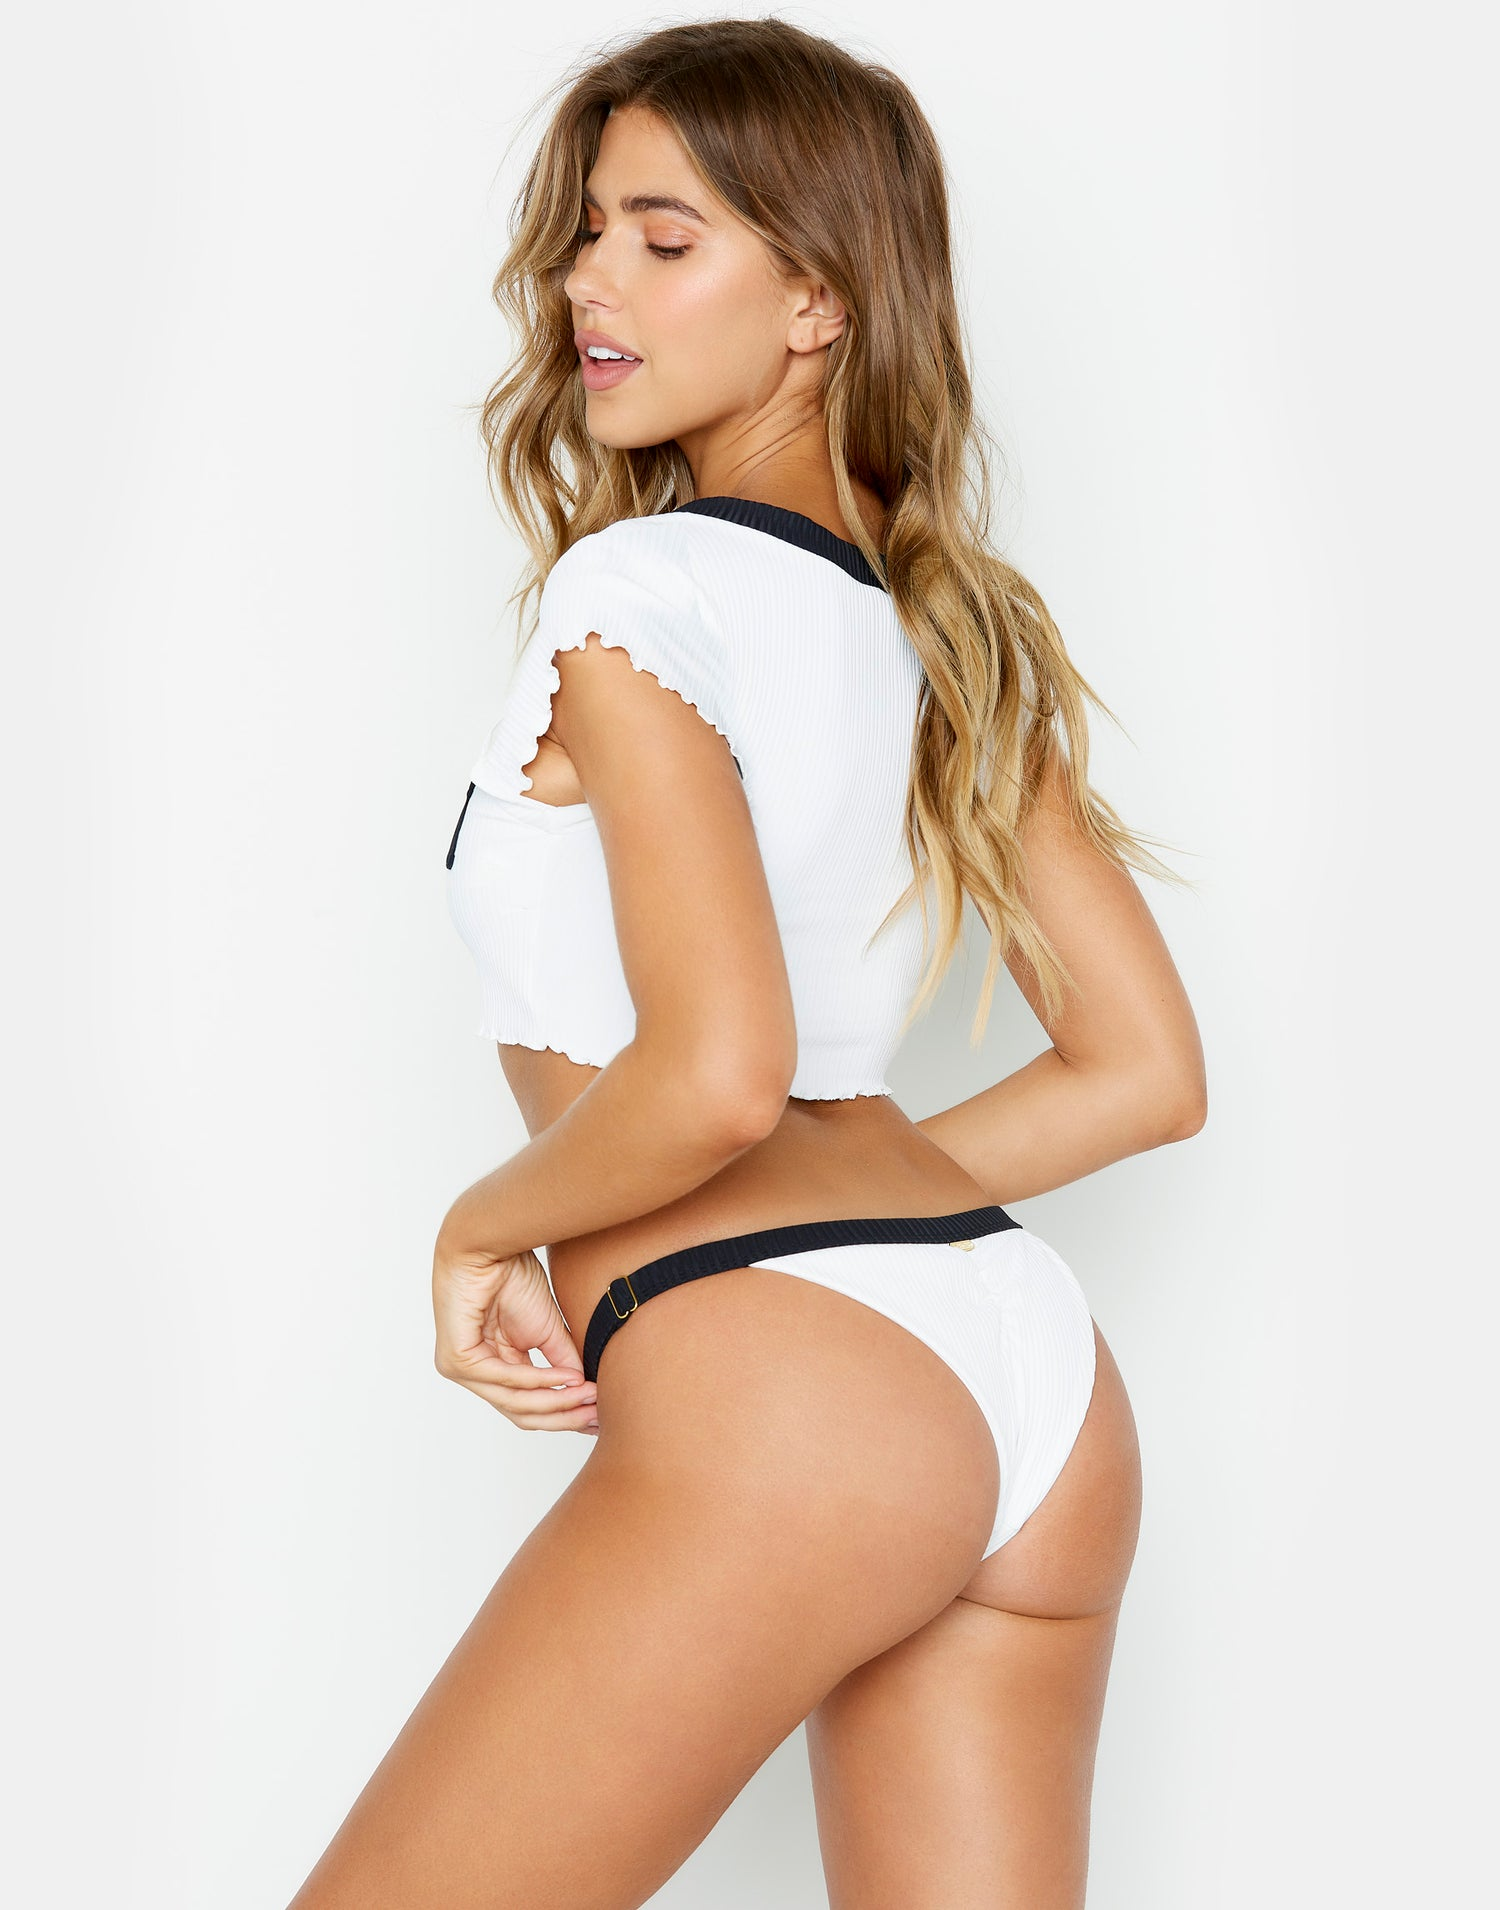 Presley Adjustable Skimpy Bikini Bottom in White Rib - back view